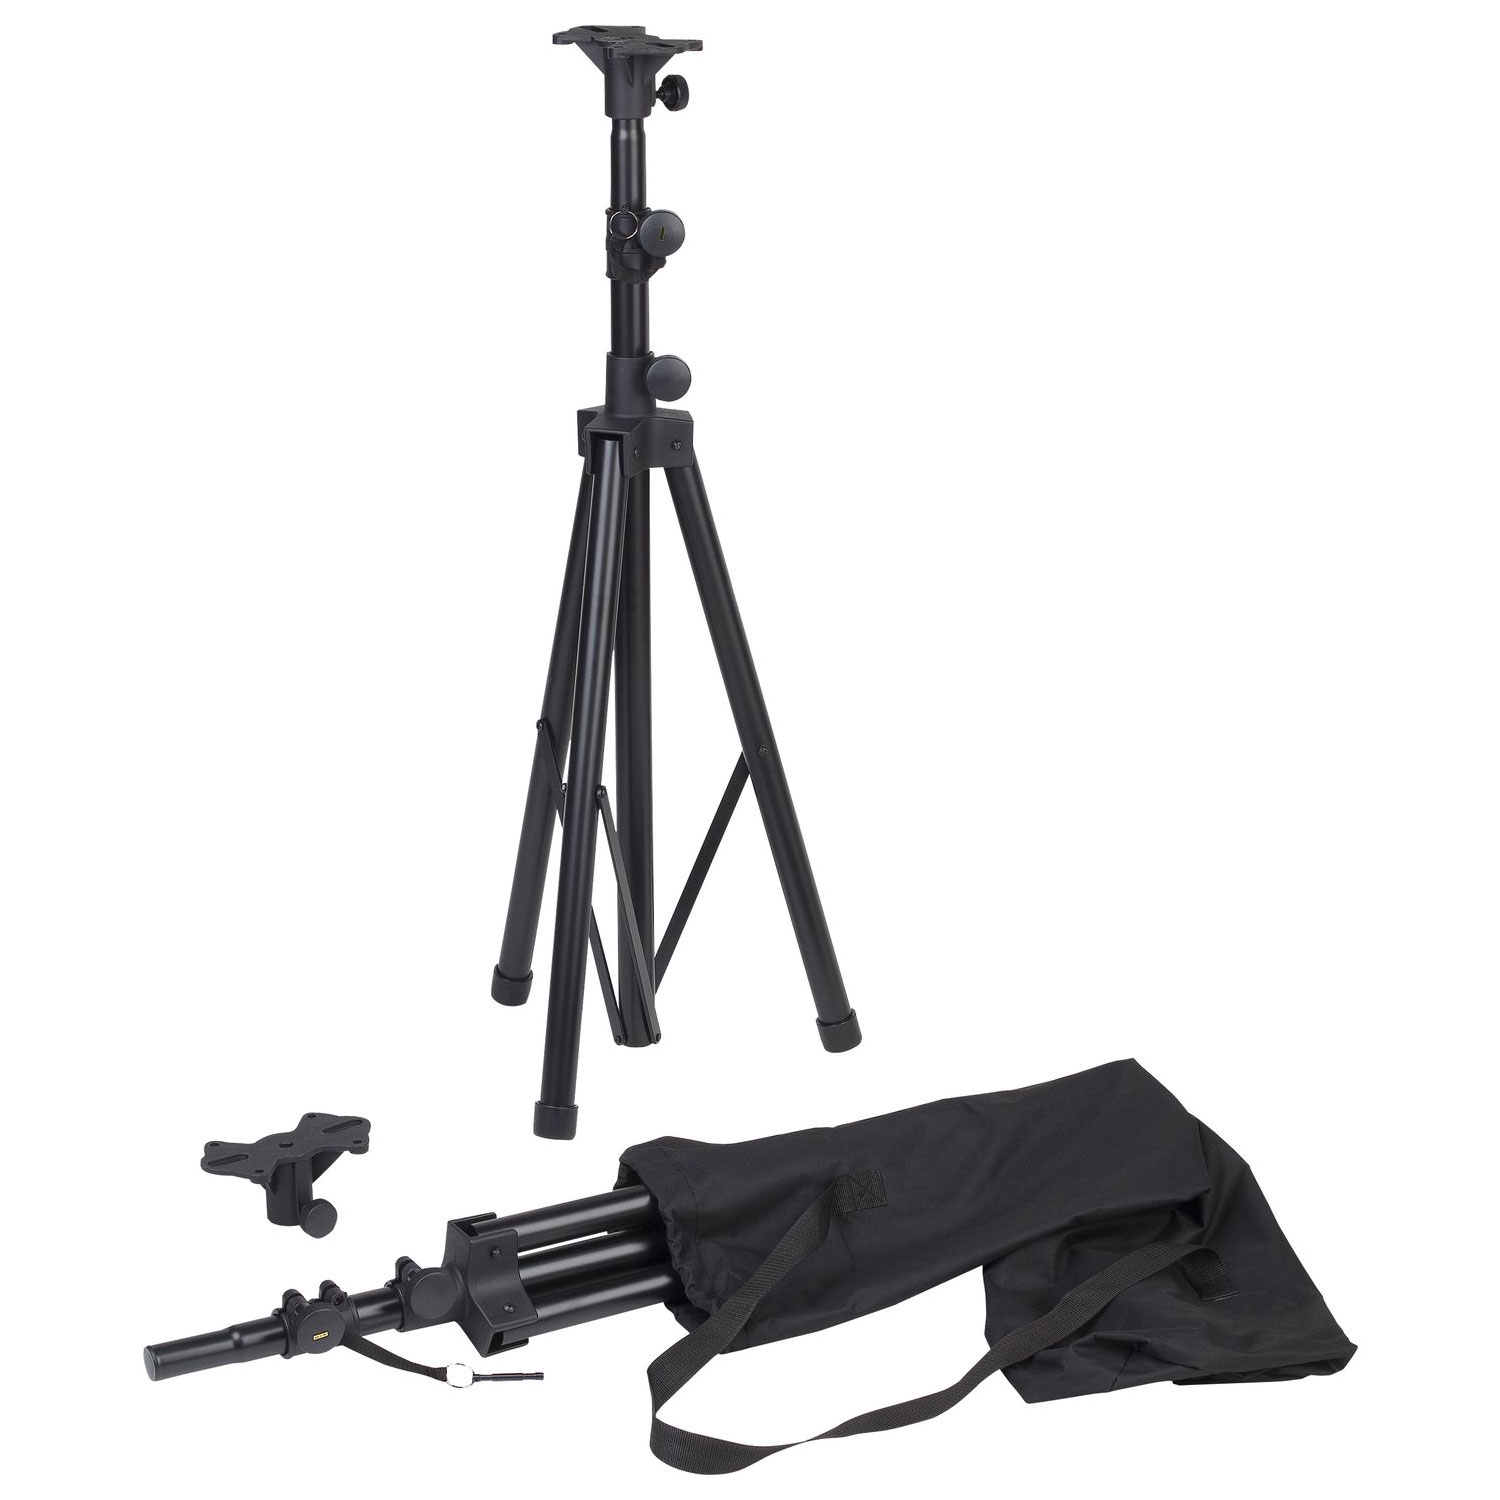 "Yamaha Aluminum Tripod Stands 1-3/8"" Diameter, Sold in Pairs (Includes ADP138 Adapter Plates)"